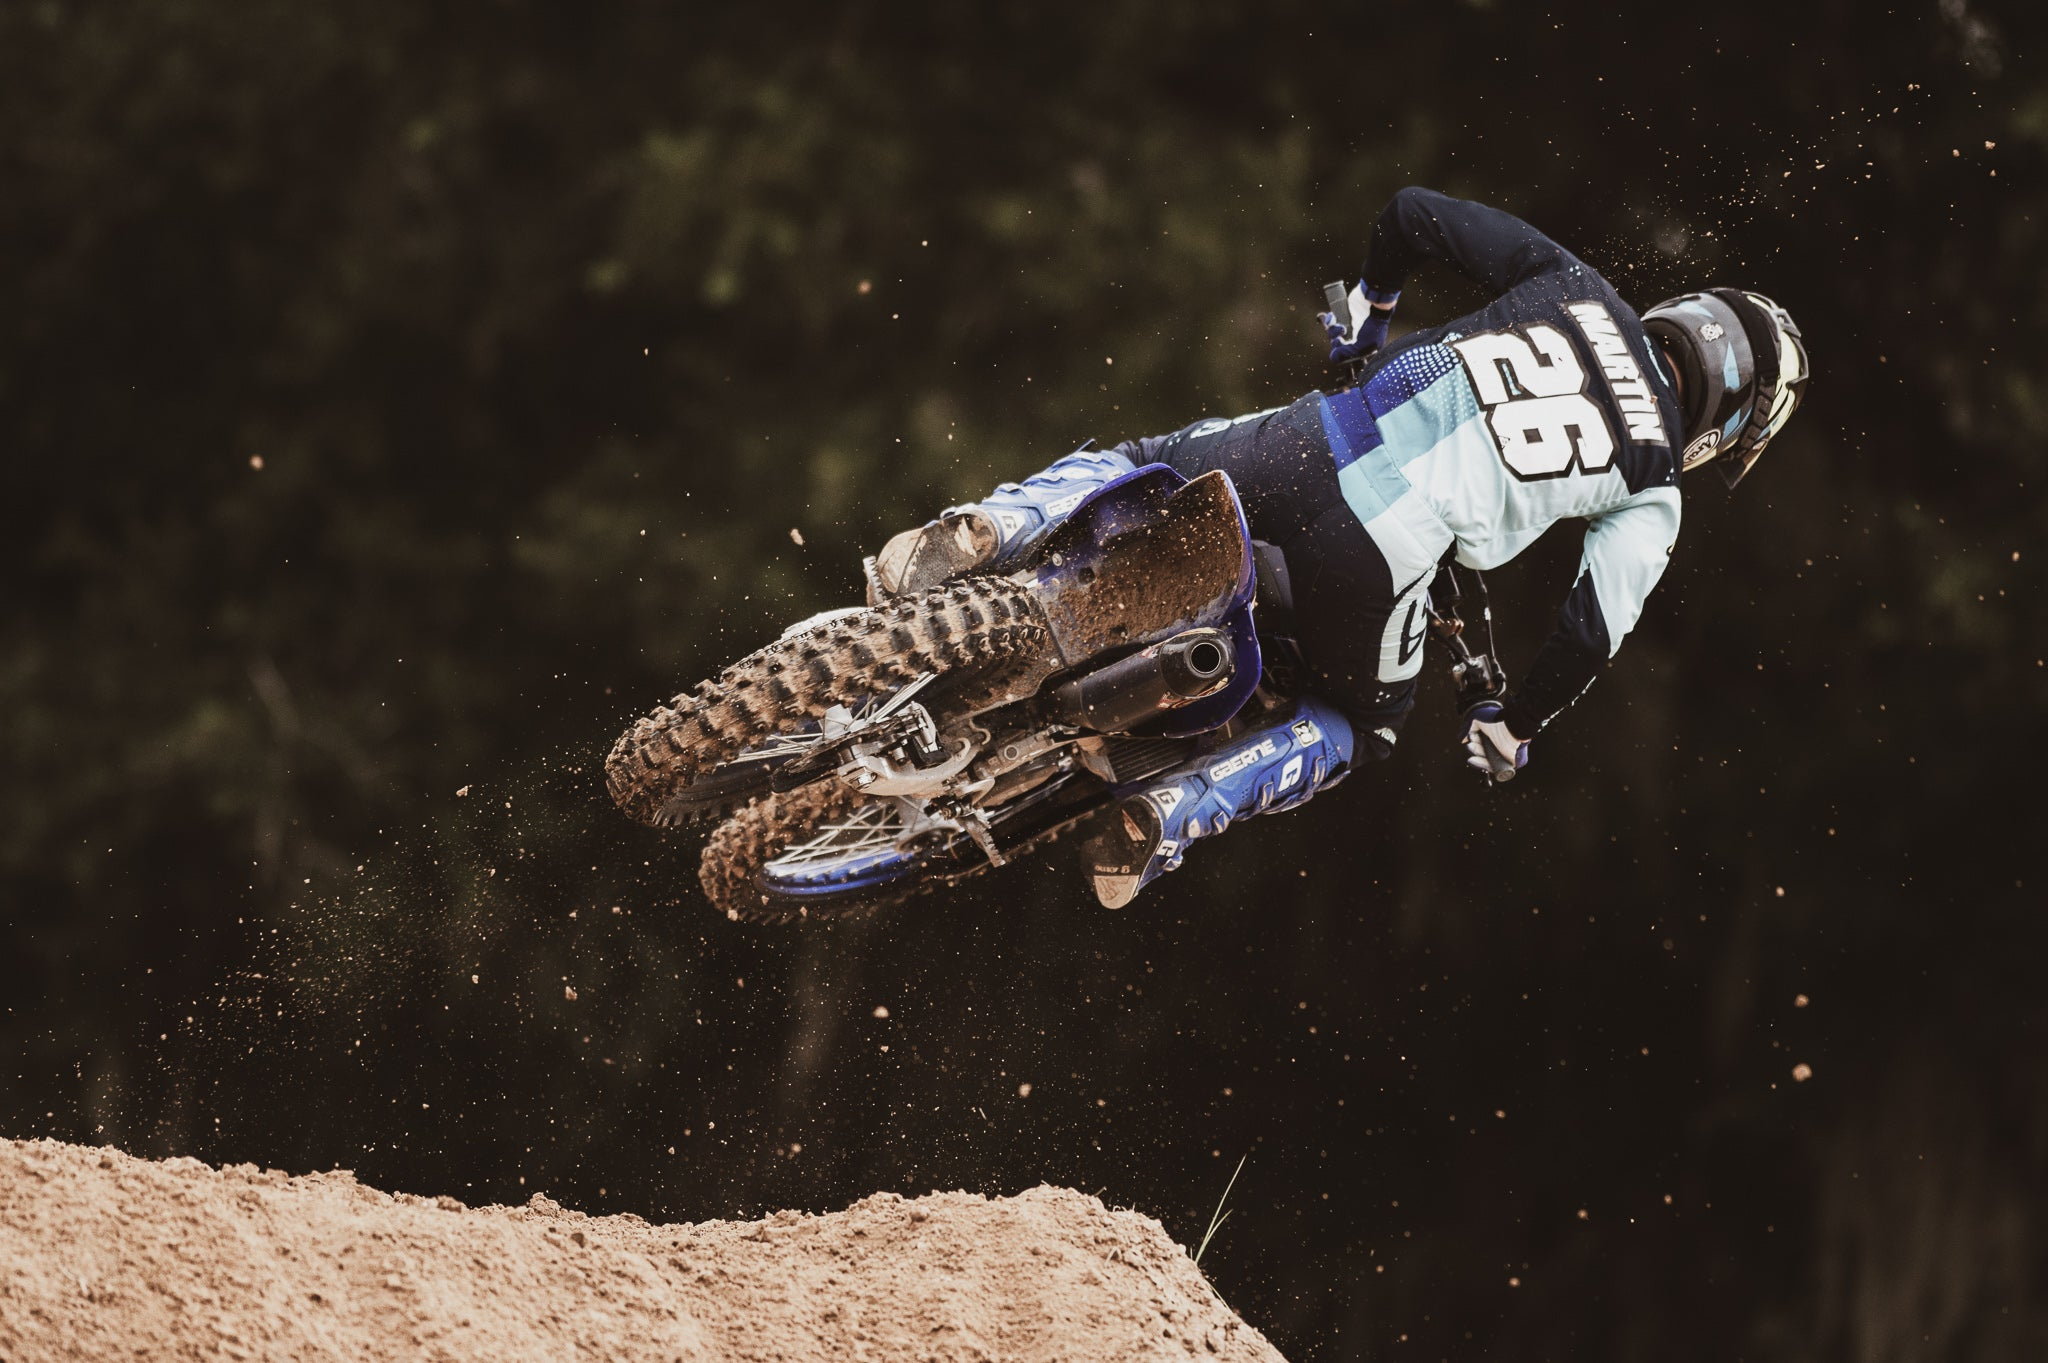 Alex Martin Profile for Manluk/Rock River/Merge Racing Supercross team